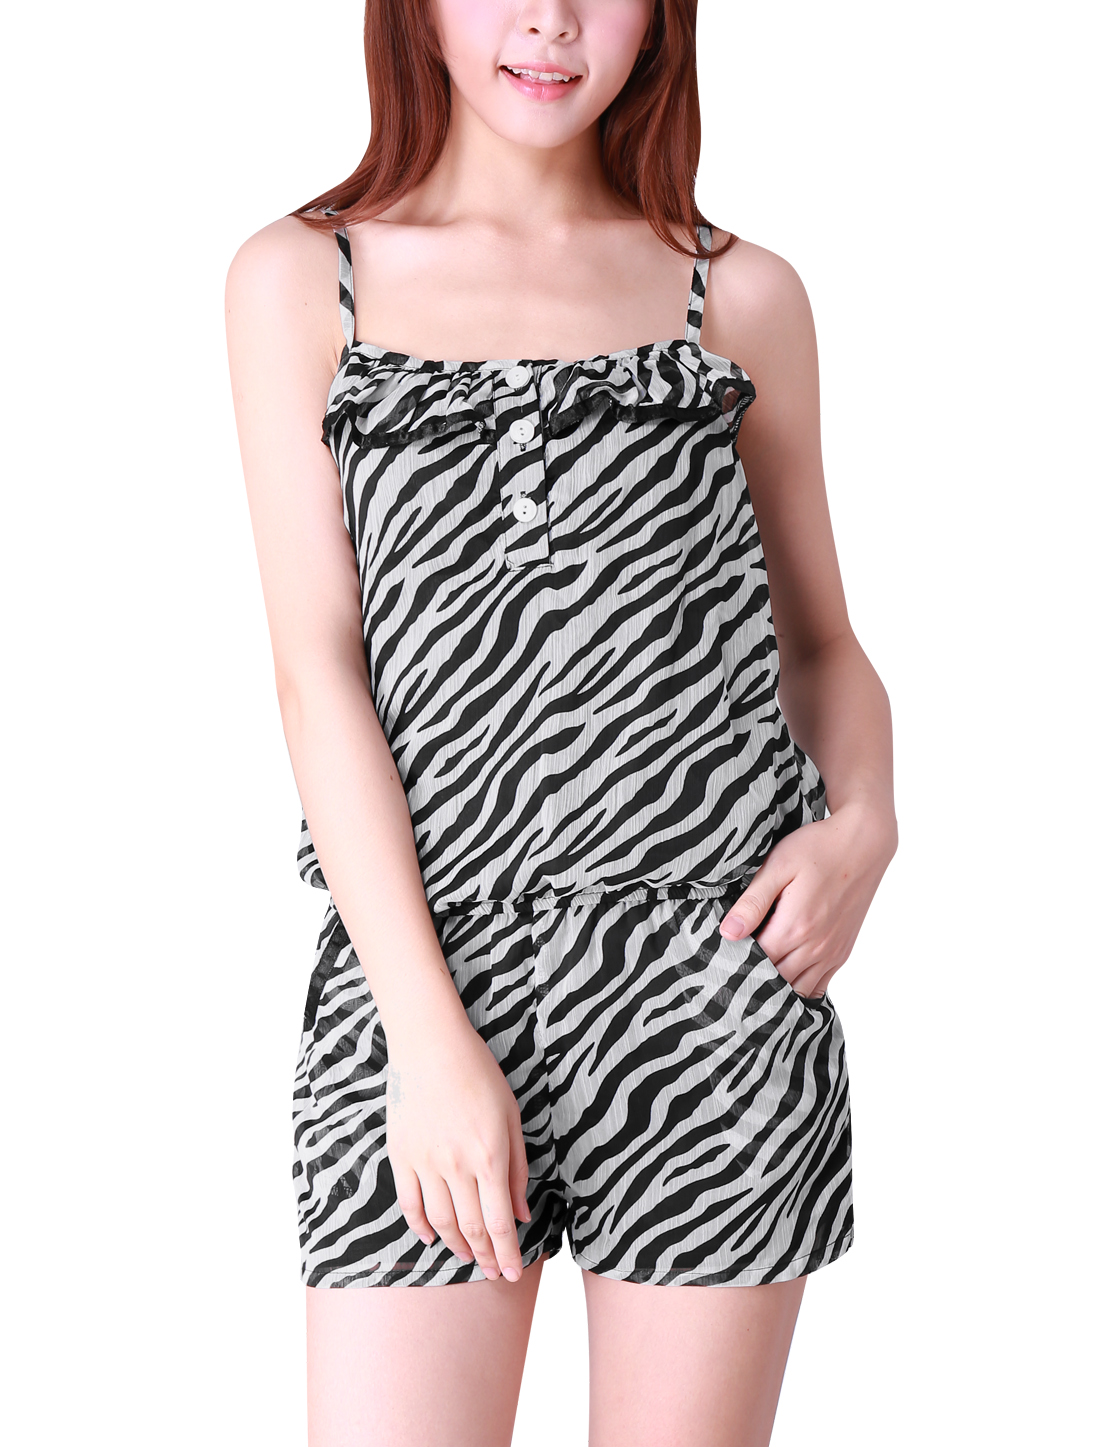 Woman Chic Black White Zebra Printed Side Pockets Design Rompers S